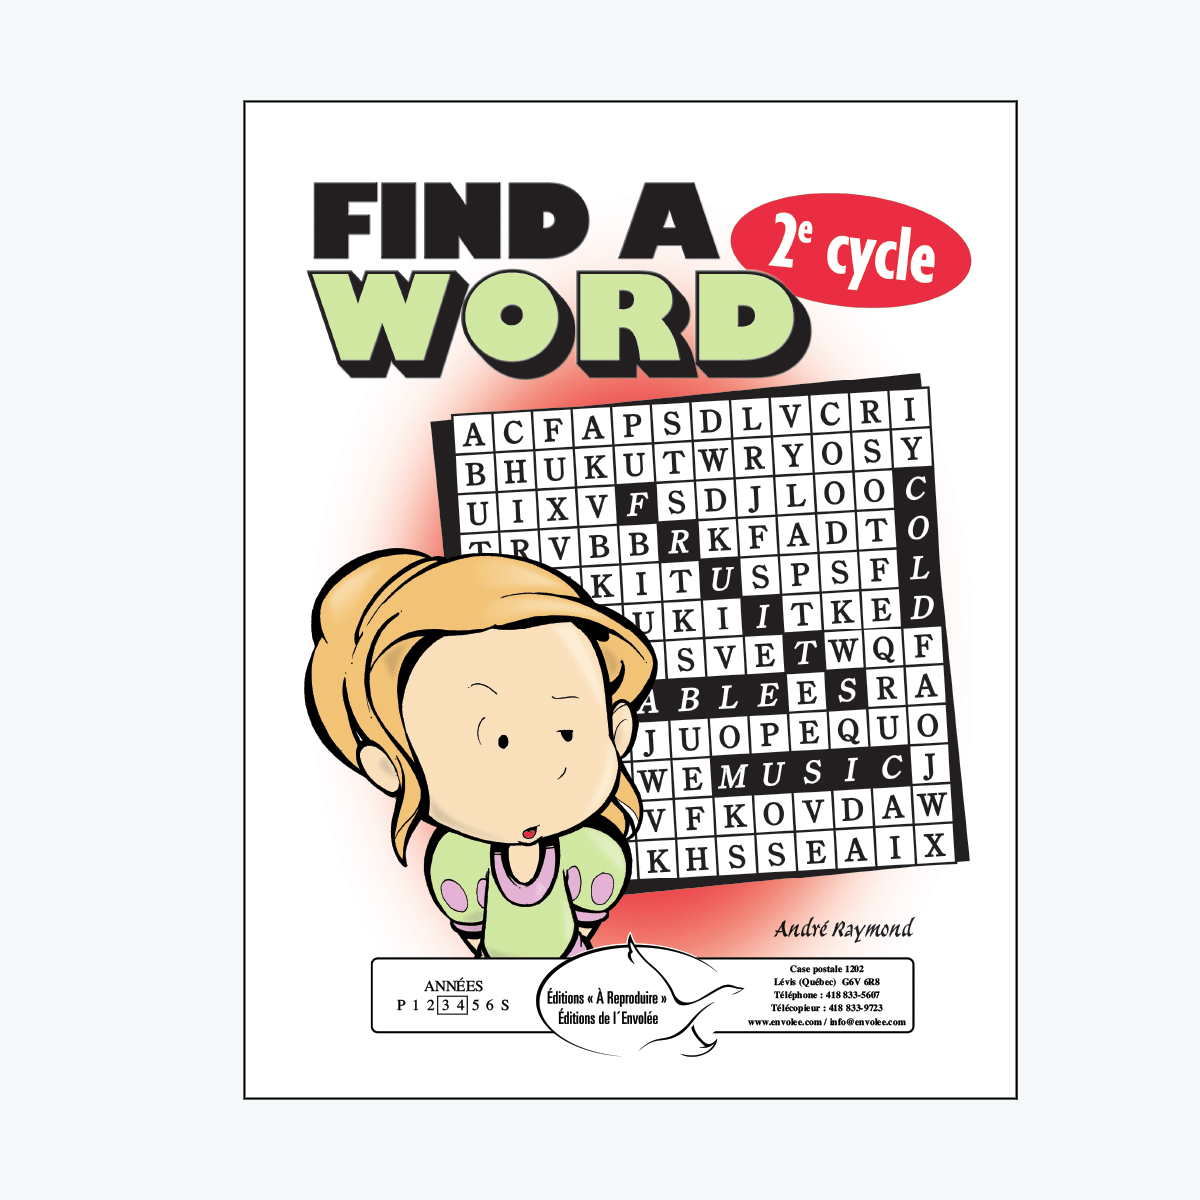 Find a Word, 2e cycle